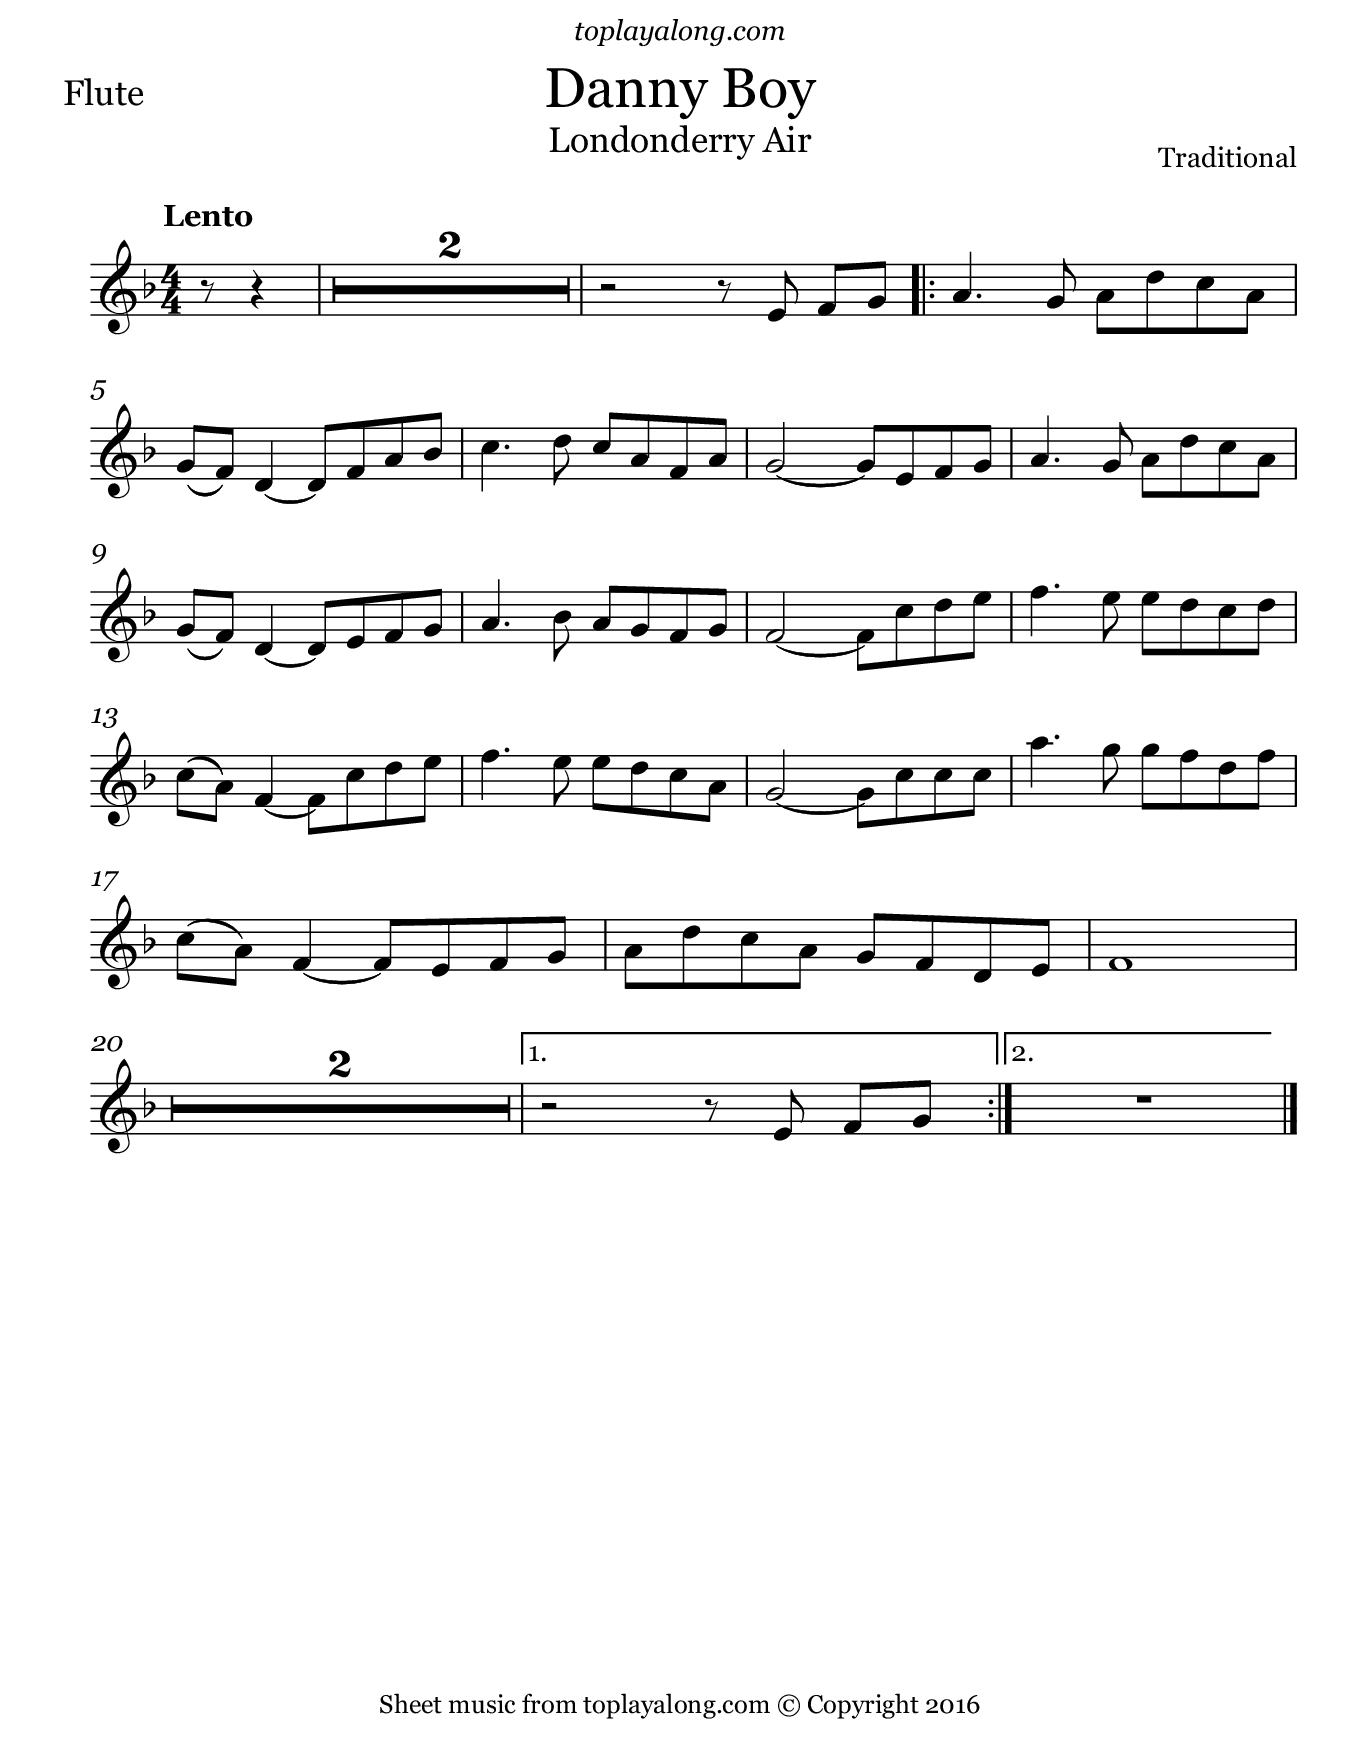 Danny Boy (Londonderry Air). Sheet music for Flute, page 1.